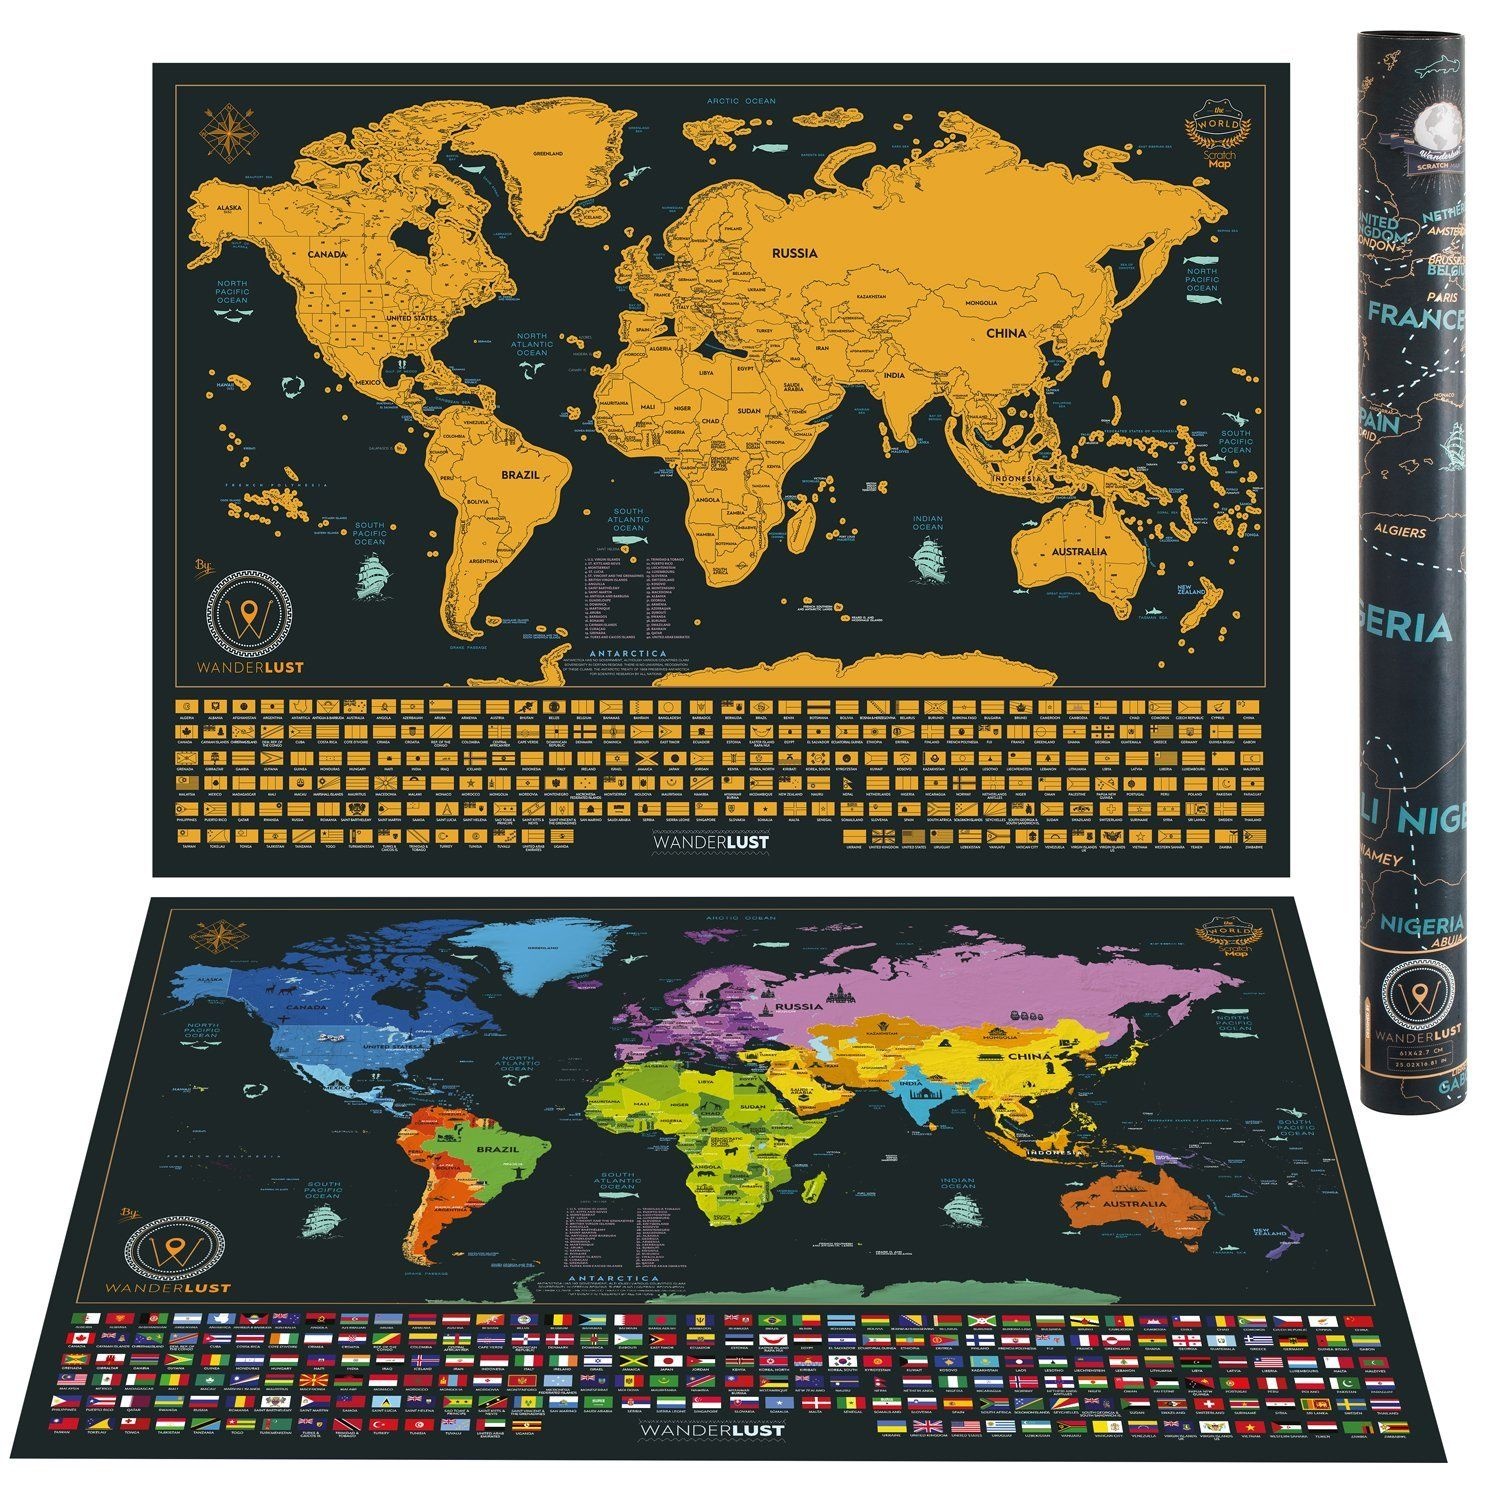 Amazon scratch off world map poster hanging kit detailed amazon scratch off world map poster hanging kit detailed map with us states and all country flags gift bundle includes scratcher memory stickers gumiabroncs Images